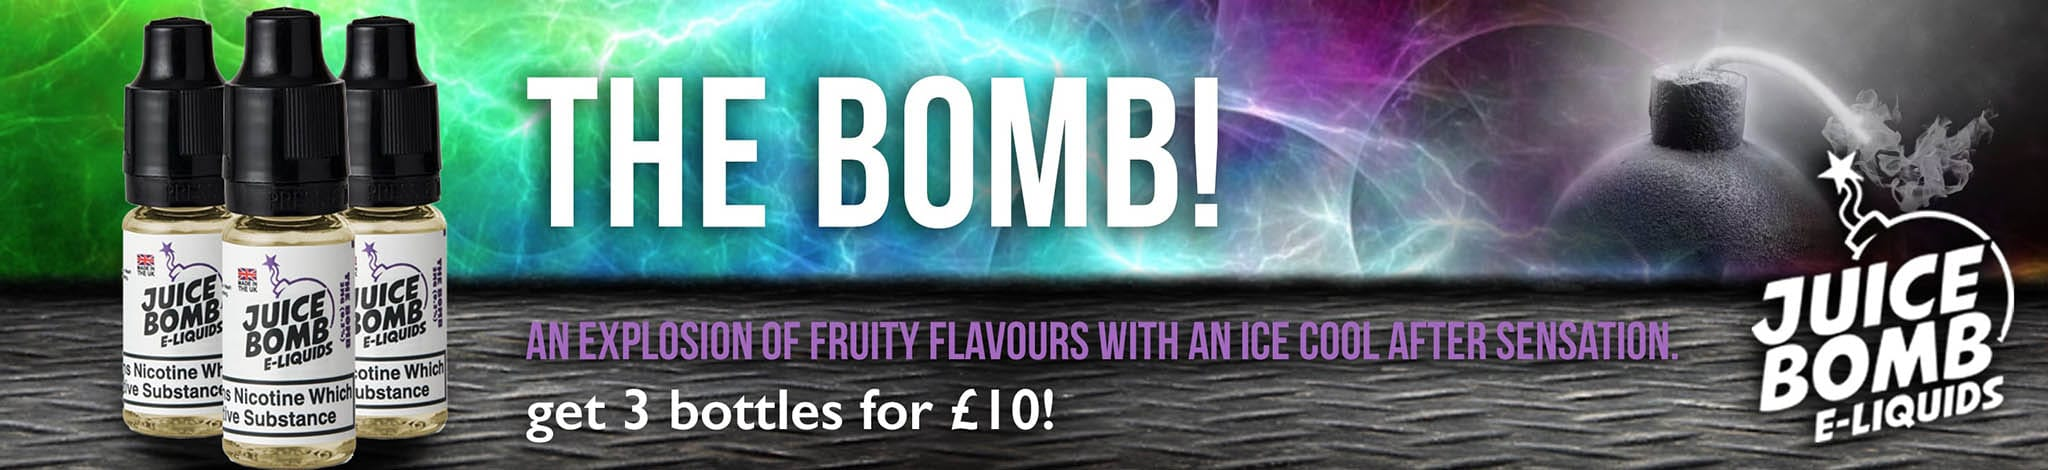 The Bomb web banner 2018